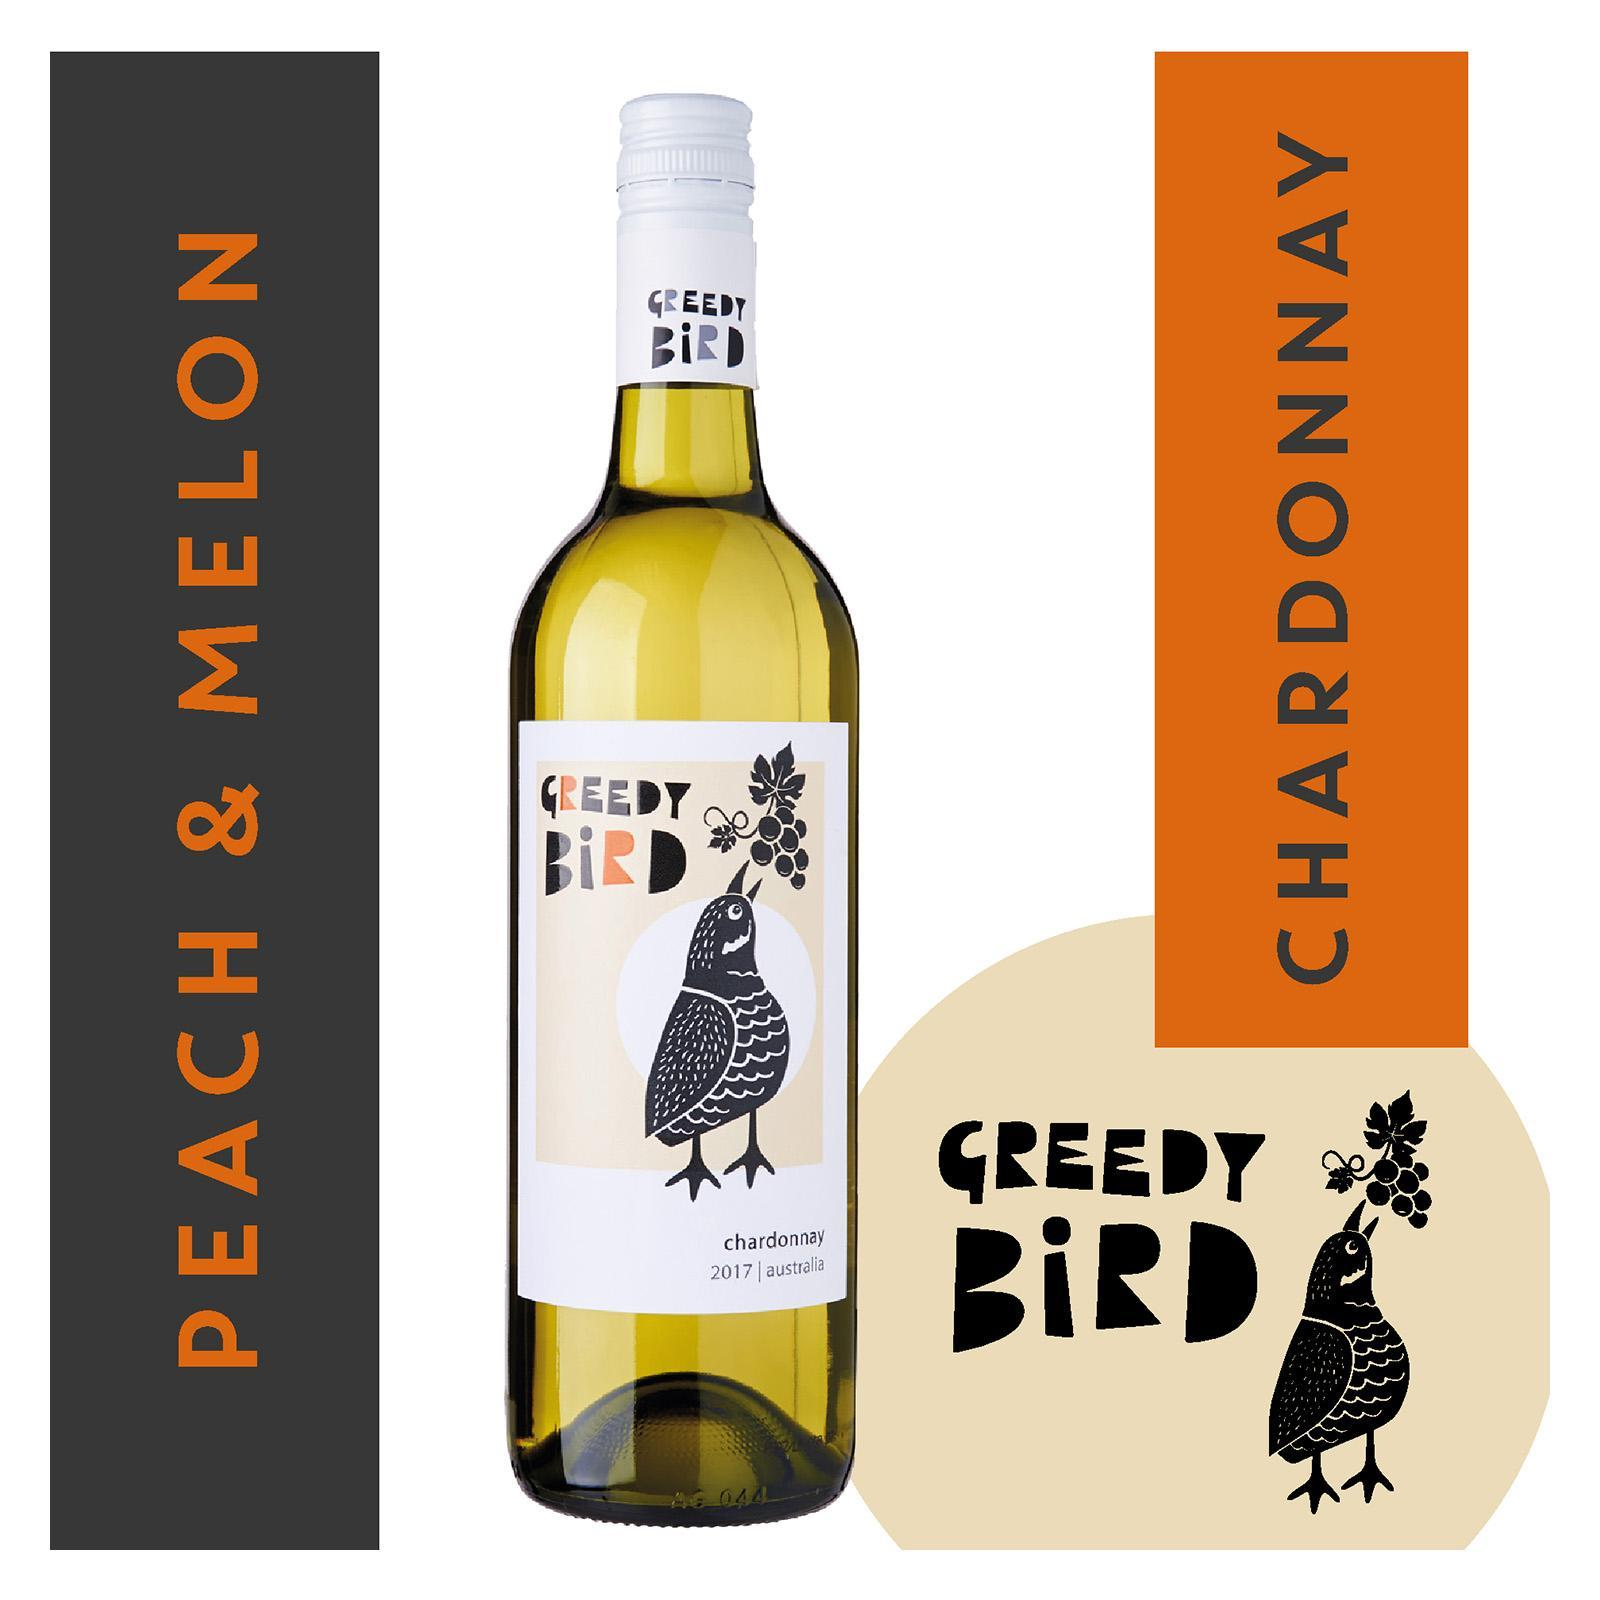 Greedy Bird South Australia Chardonnay White Wine